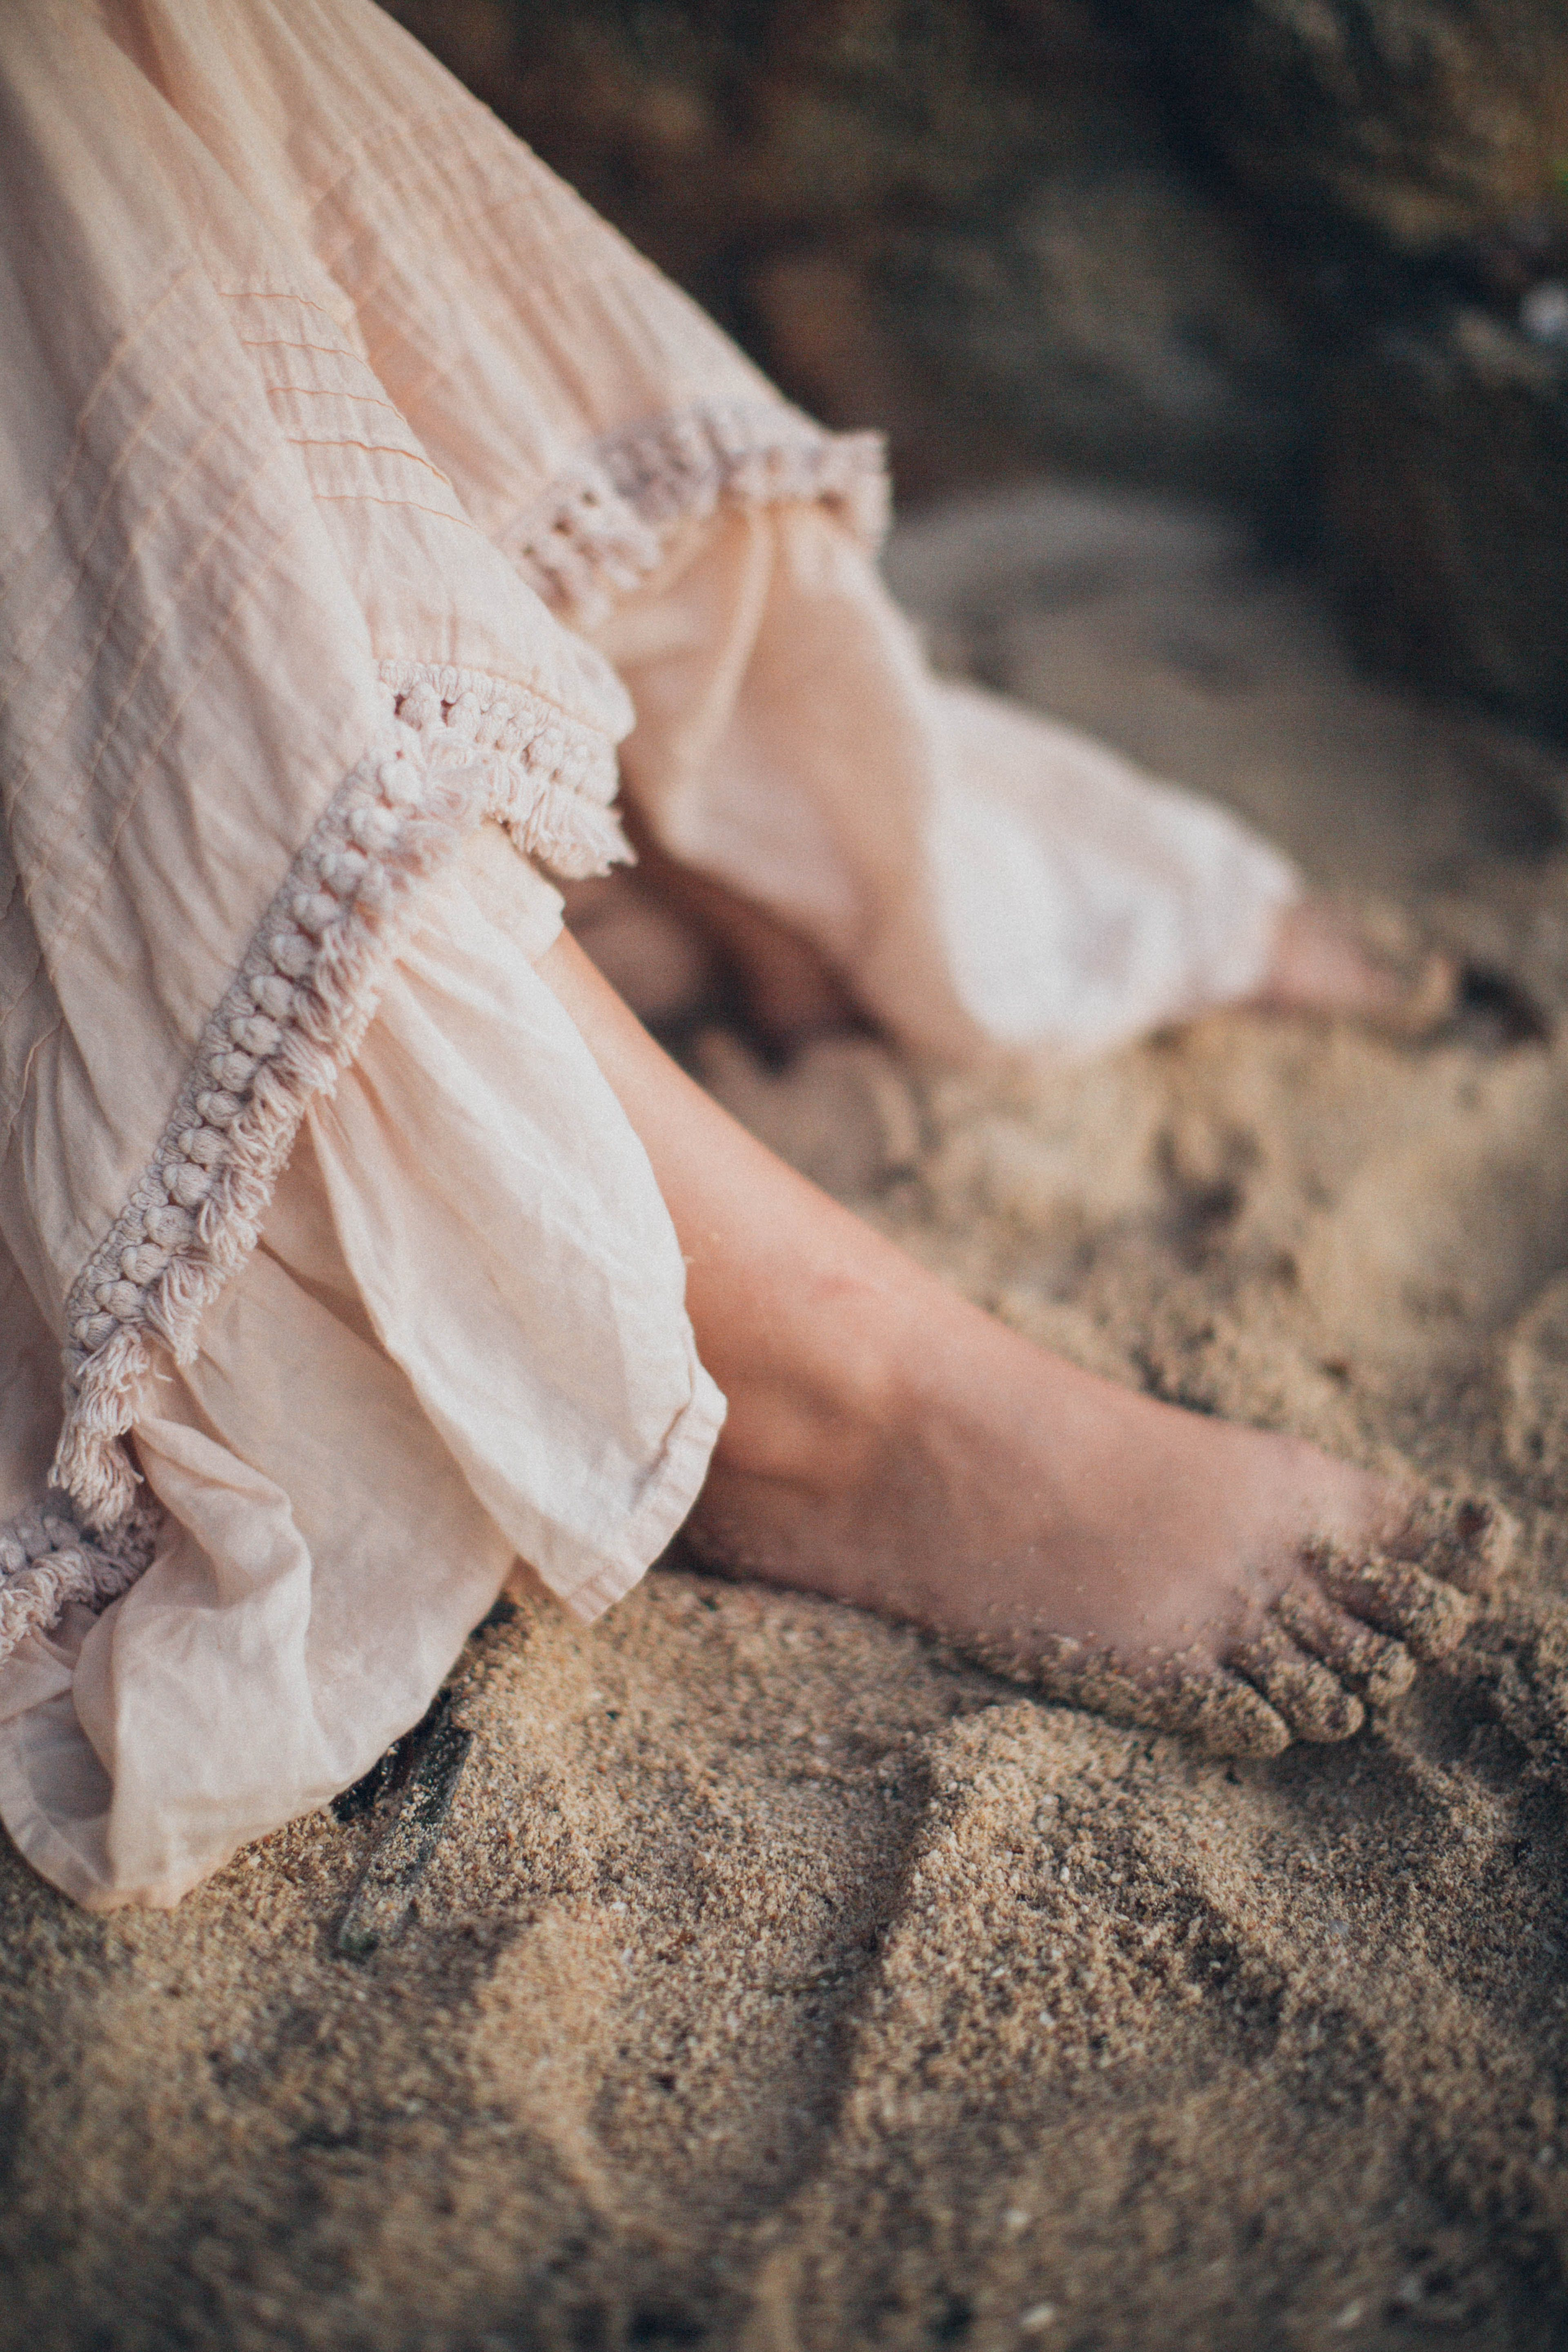 Woman Wearing White Dress Stepping on Sand Barefooted